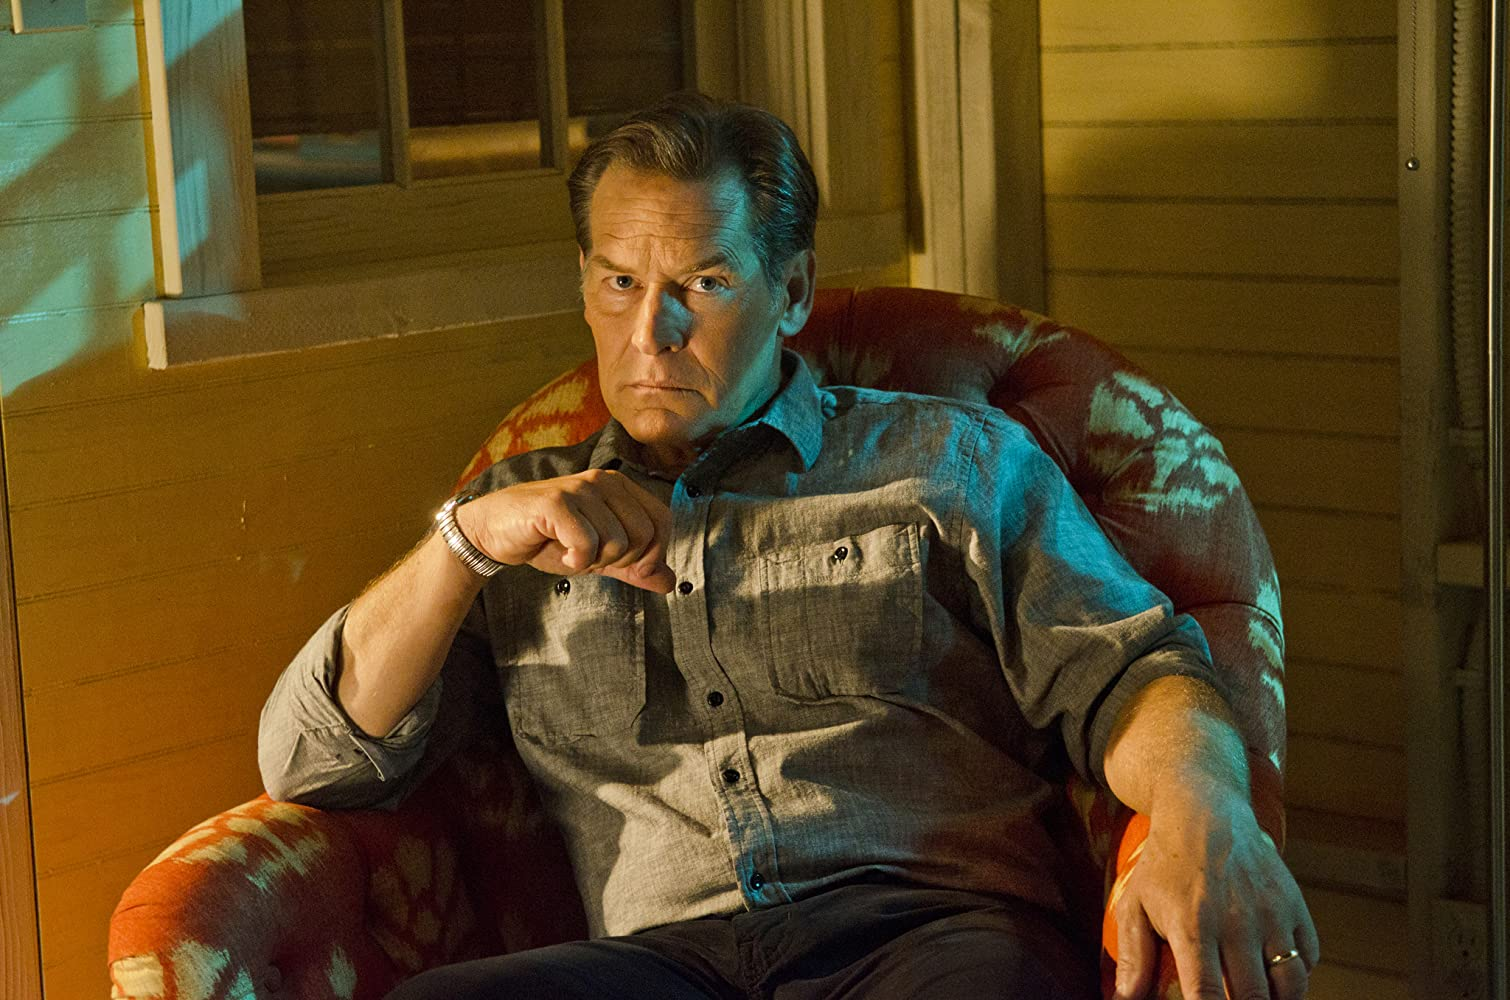 James Remar: How He Made Michael Biehn More Famous By Doing Drugs